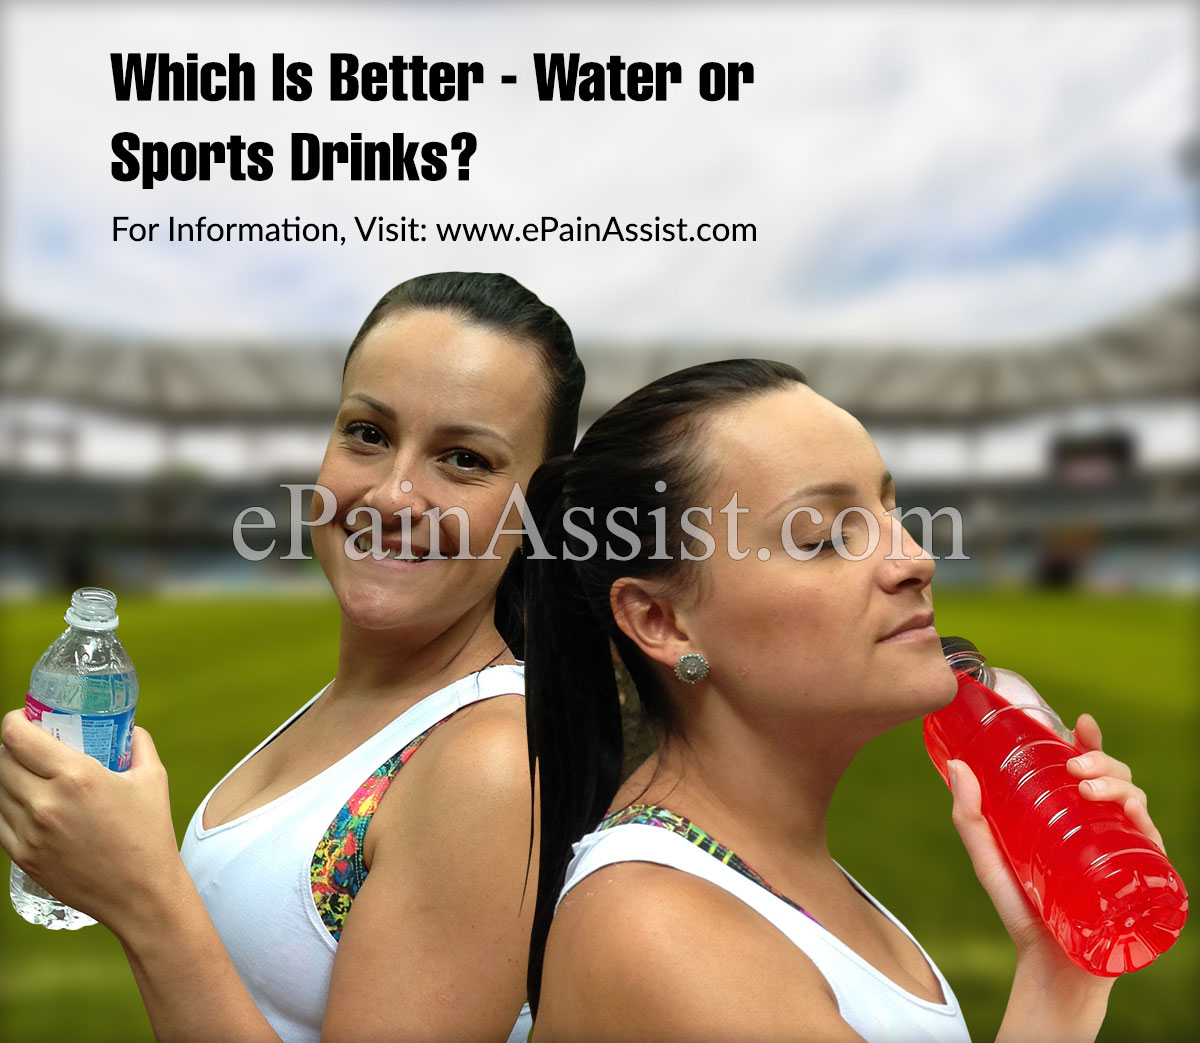 Which Is Better - Water or Sports Drinks?